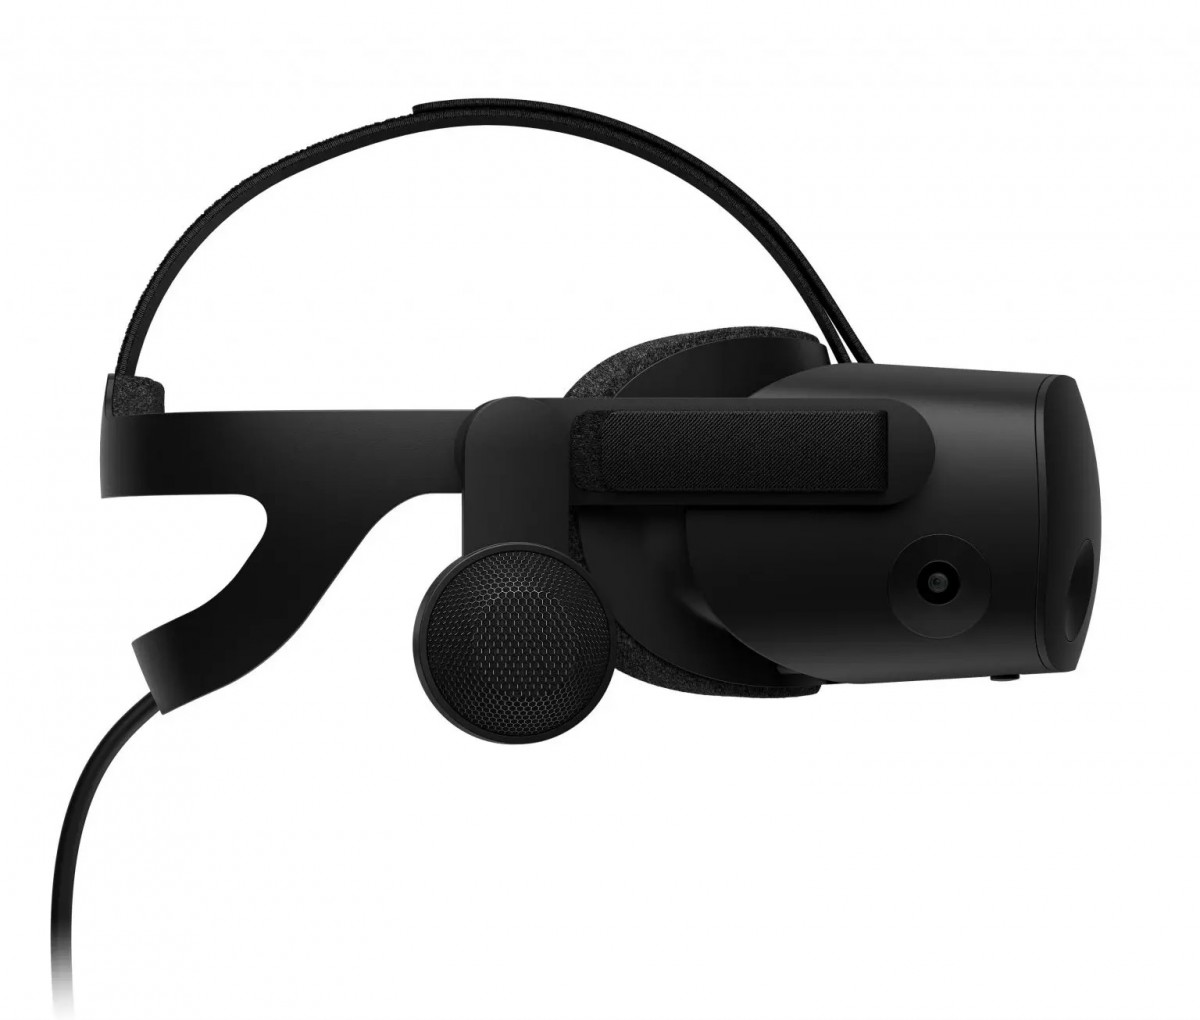 HP Reverb G2 Windows Mixed Reality